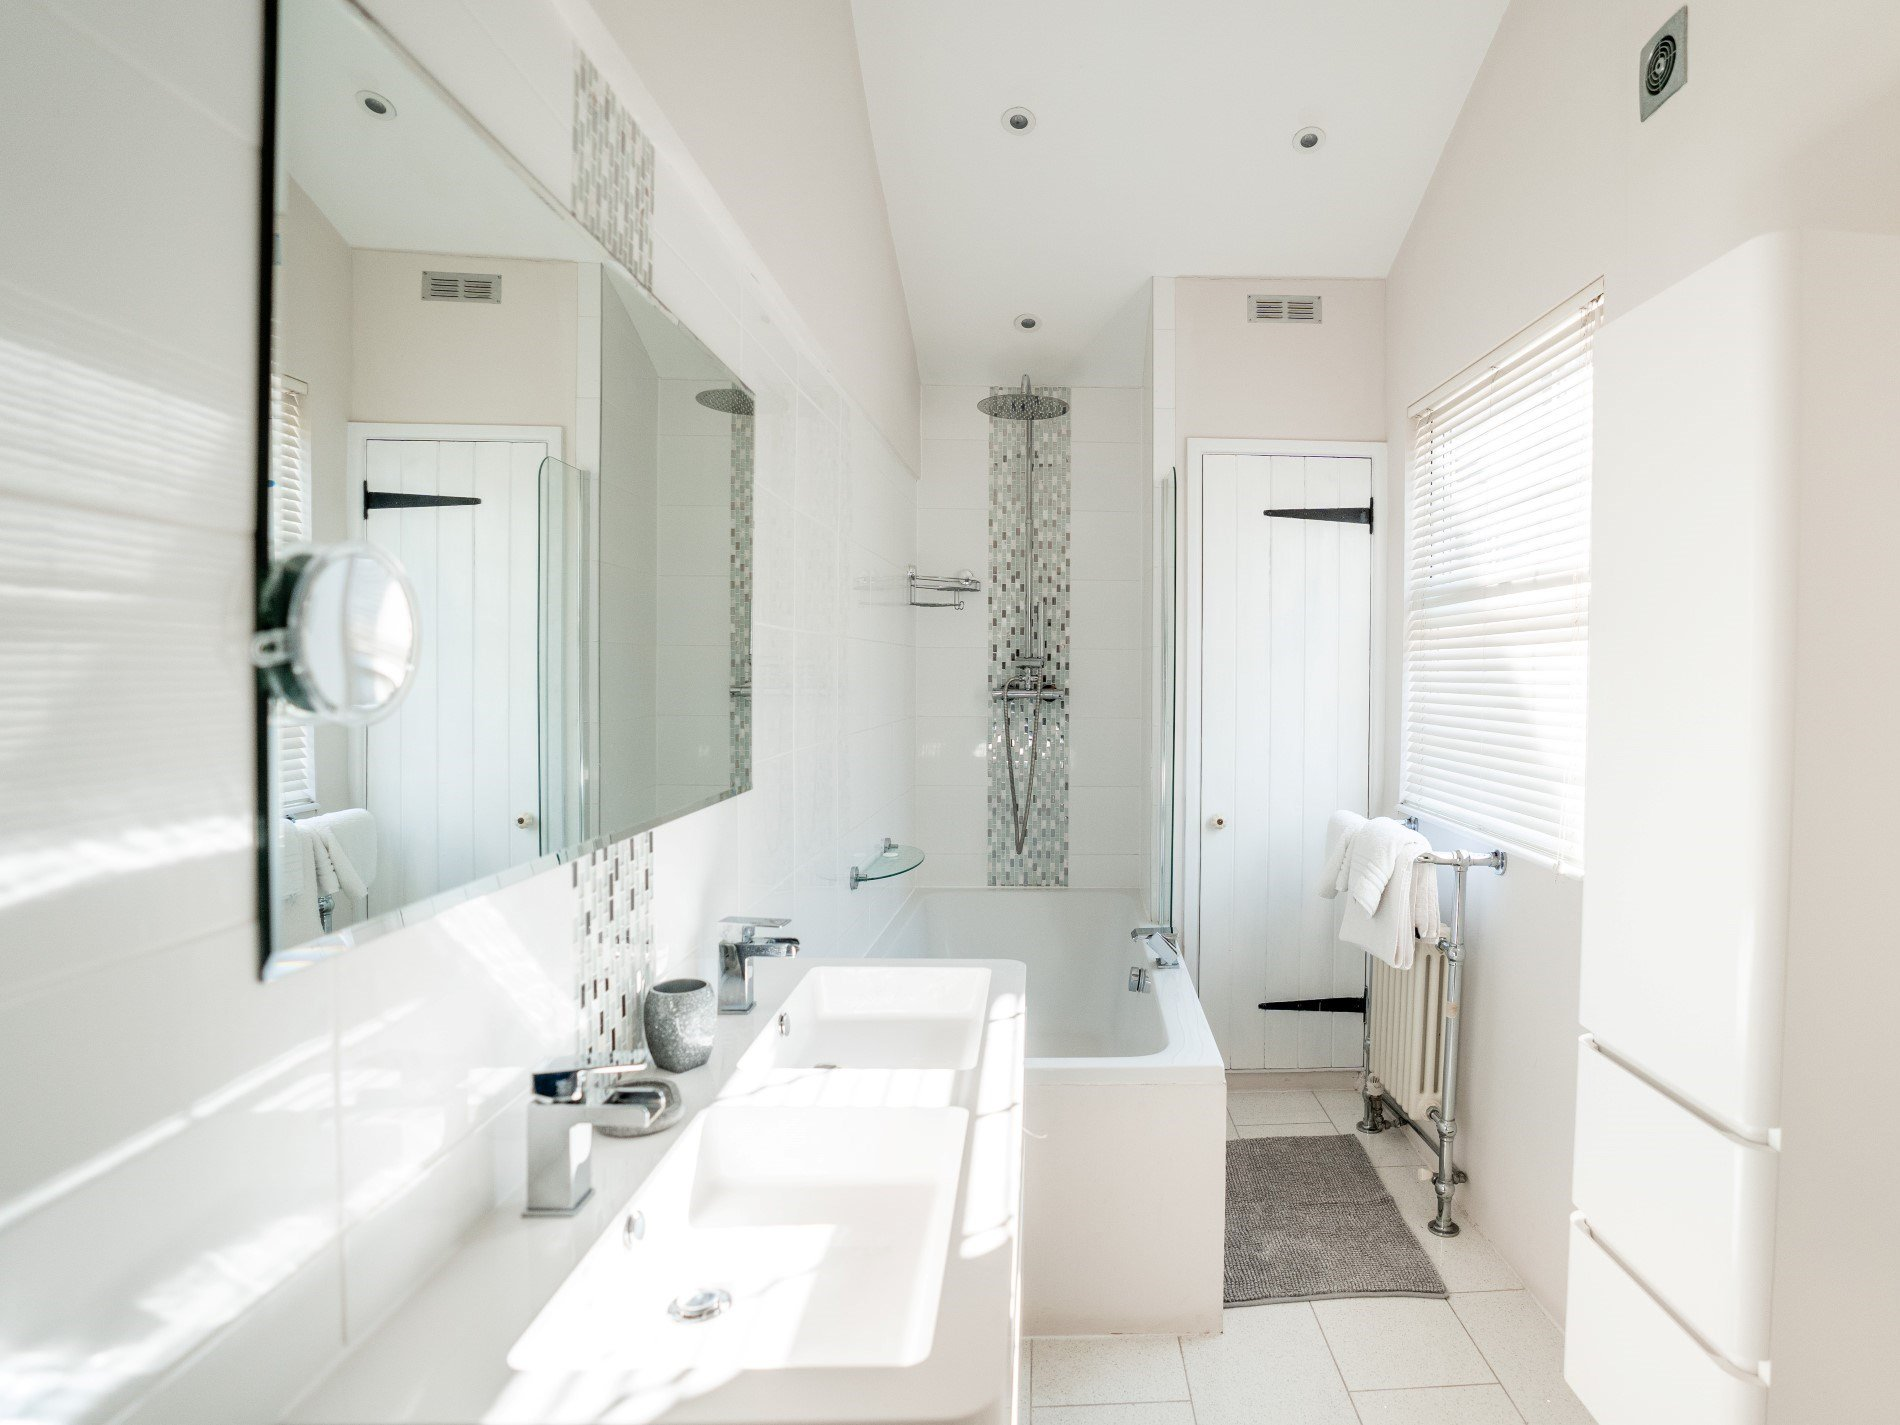 Contemporary en-suite bathroom with his and hers sinks